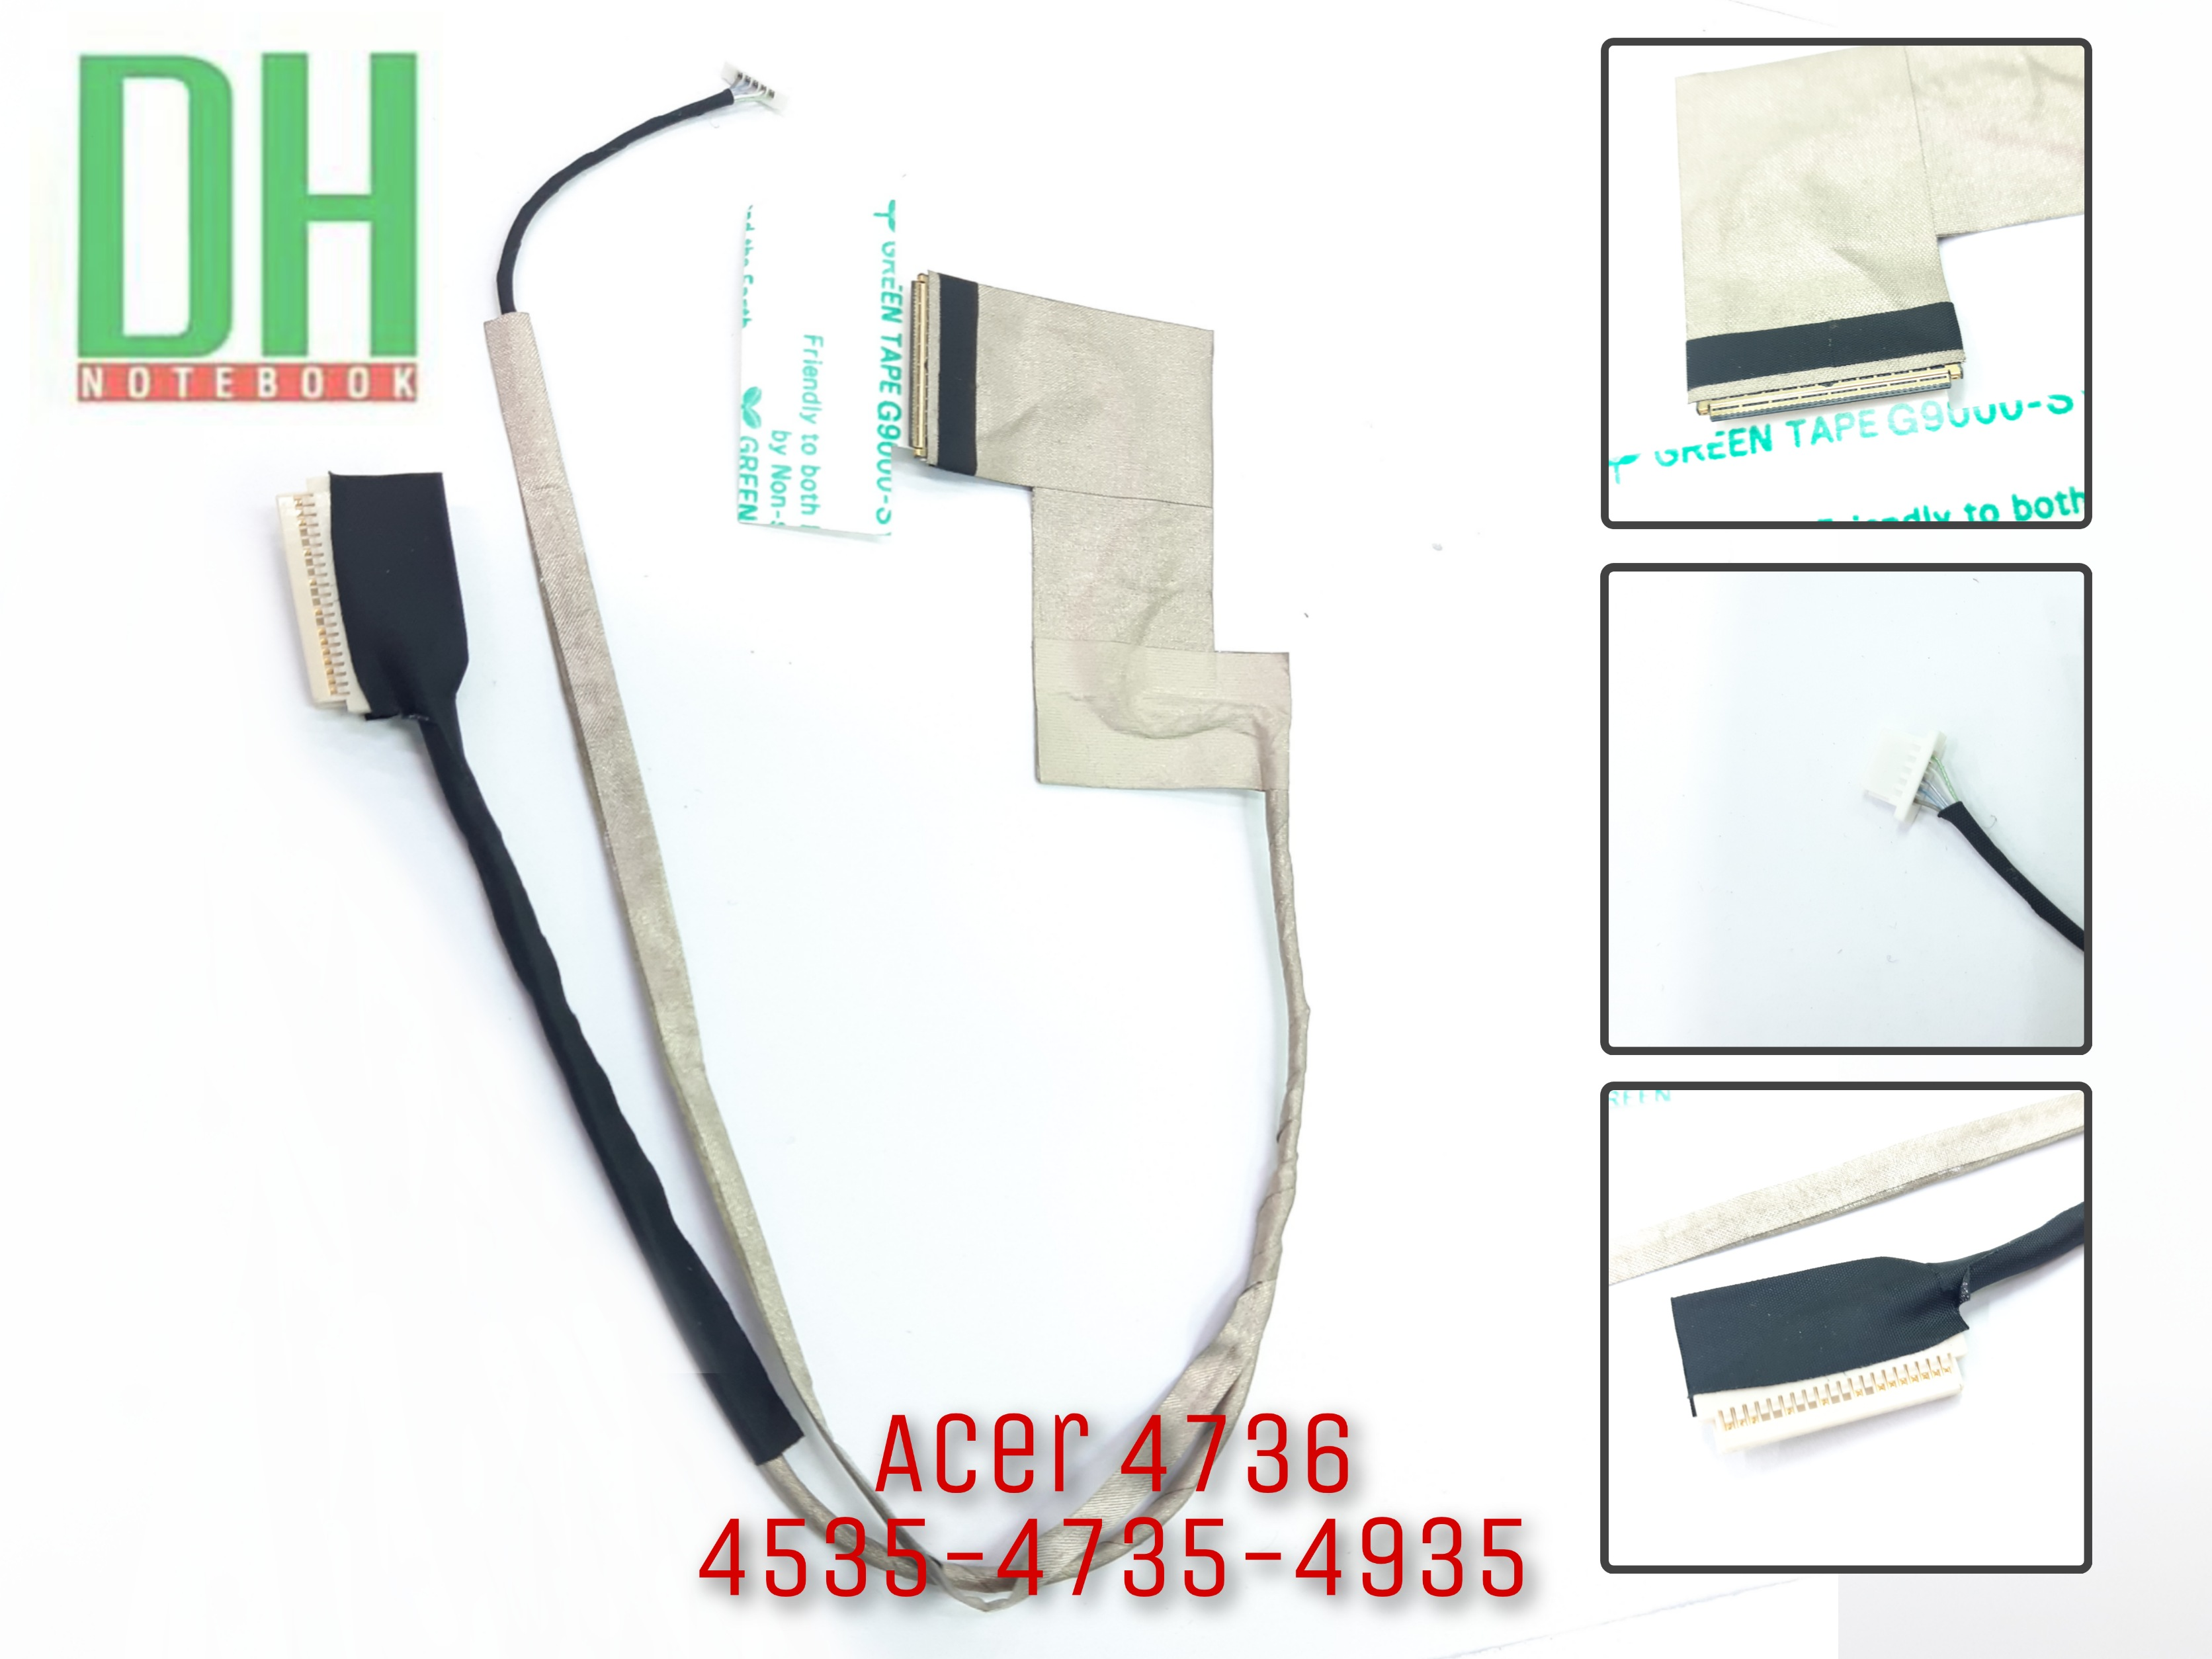 Acer 4736 Video Cable